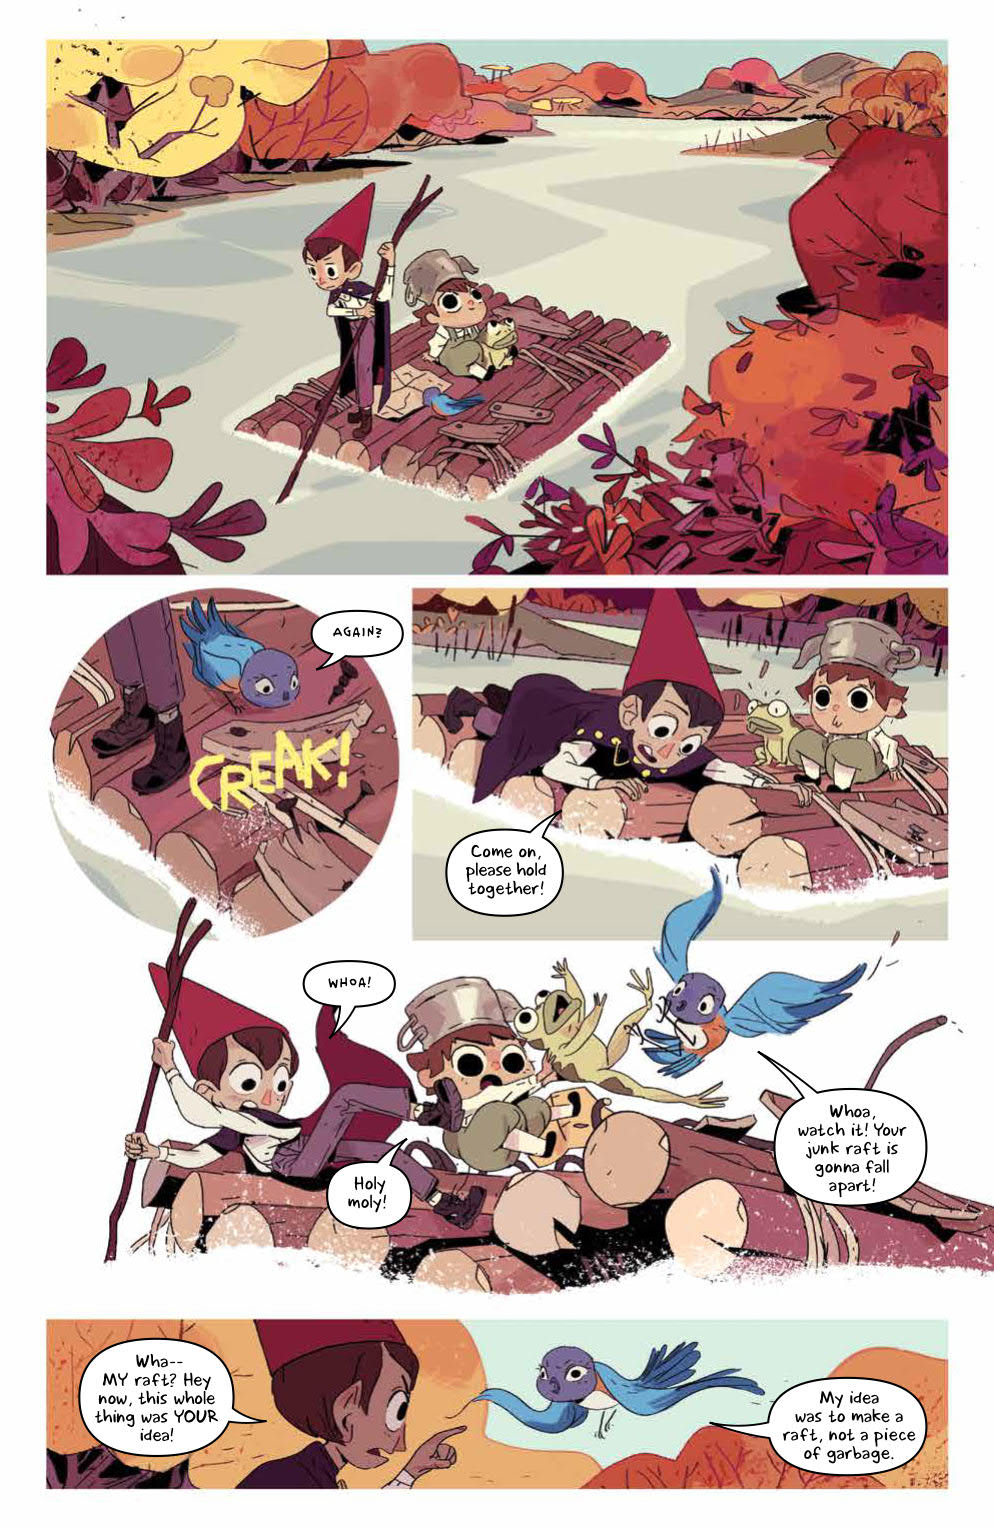 Over The Garden Wall: Hollow Town: Page 9, Wirt, Greg, and Beatrice on raft.